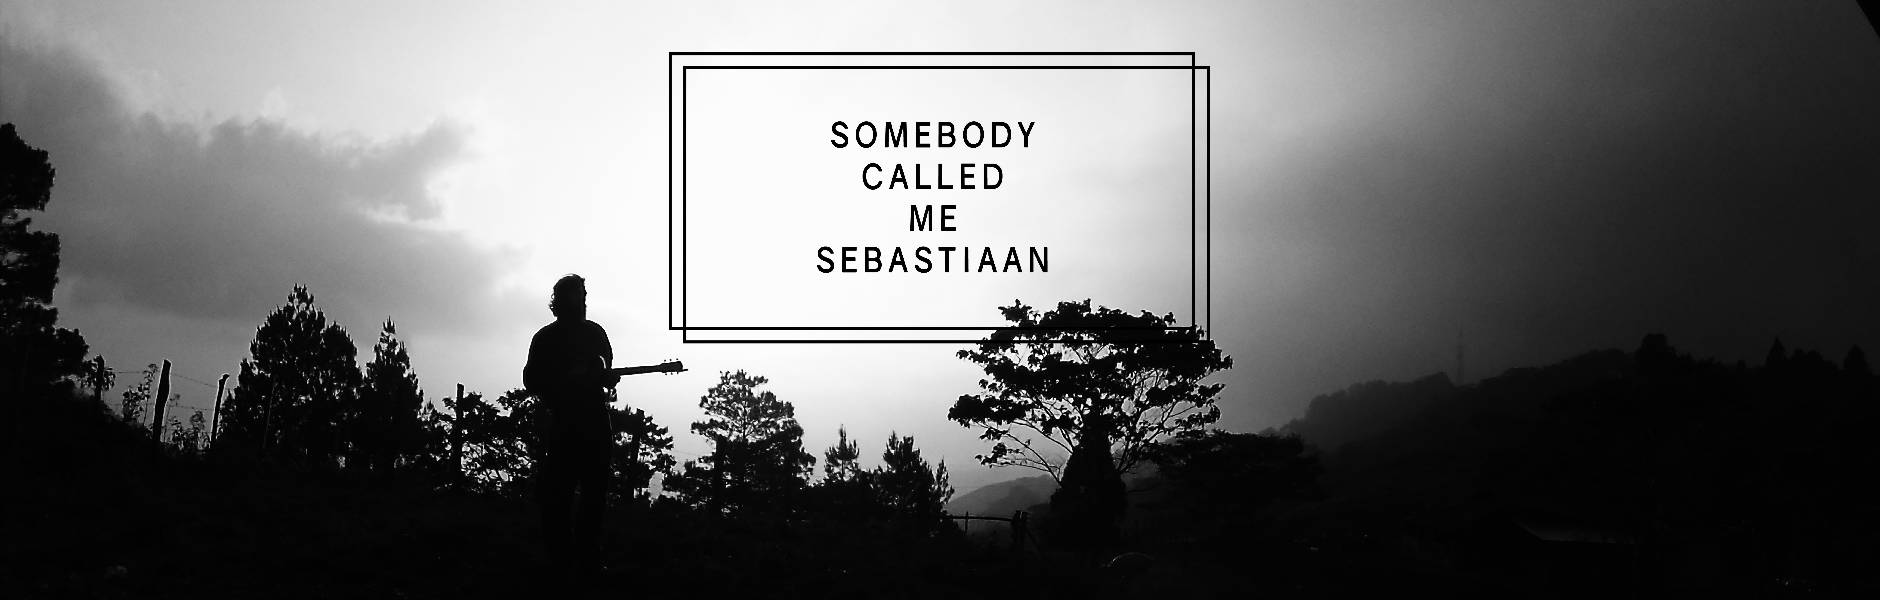 Somebody Called Me Sebastiaan